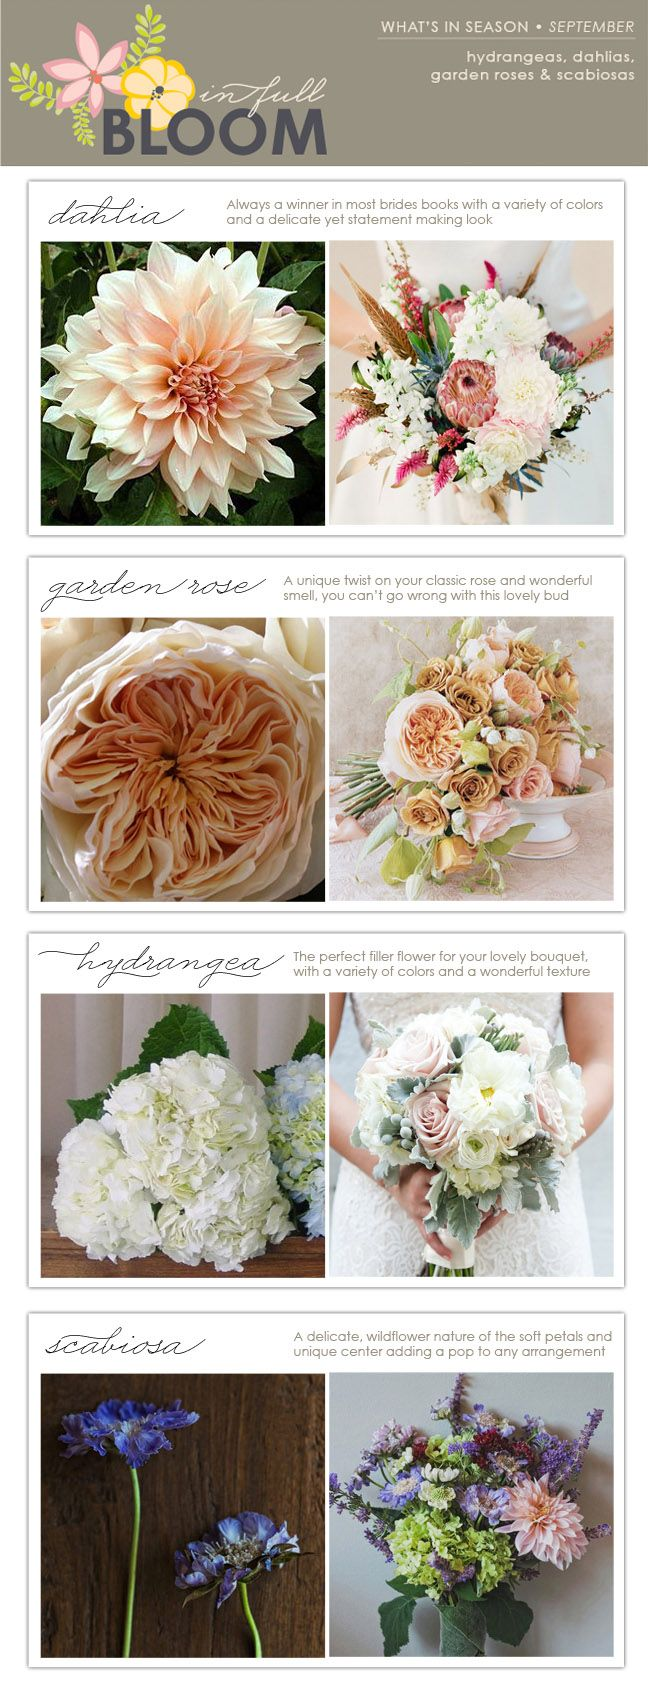 I have a new found affinity for Dahlias and Garden Roses! In Full Bloom: What's in Season - September - The Collection Event Studio - The Collection - A Wine Country Wedding & Event Studio Showcasing a Curated Collection of Vendors & Venues